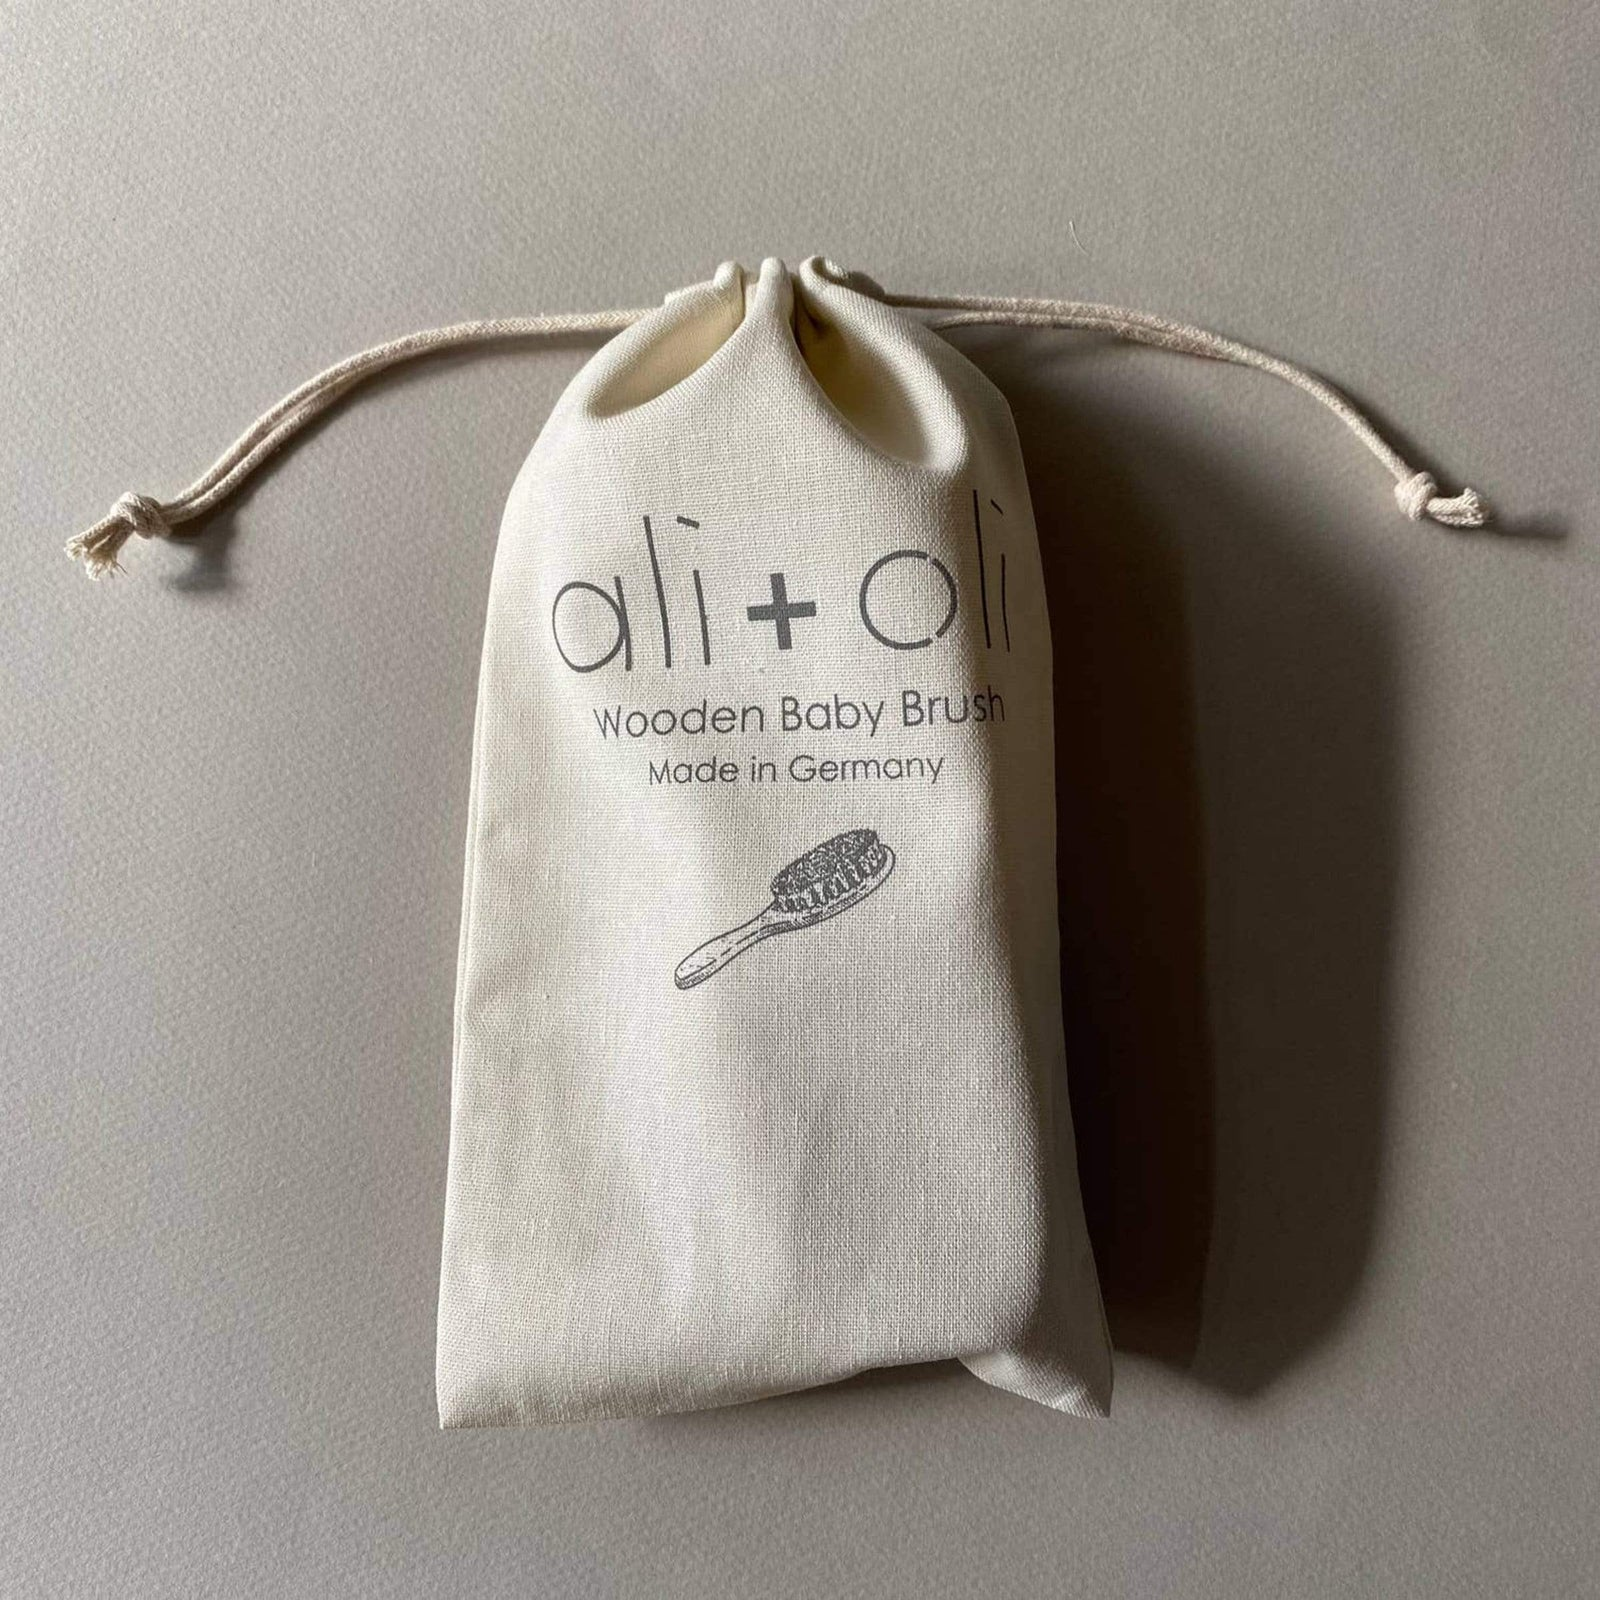 Ali+Oli Child Wooden Baby Brush